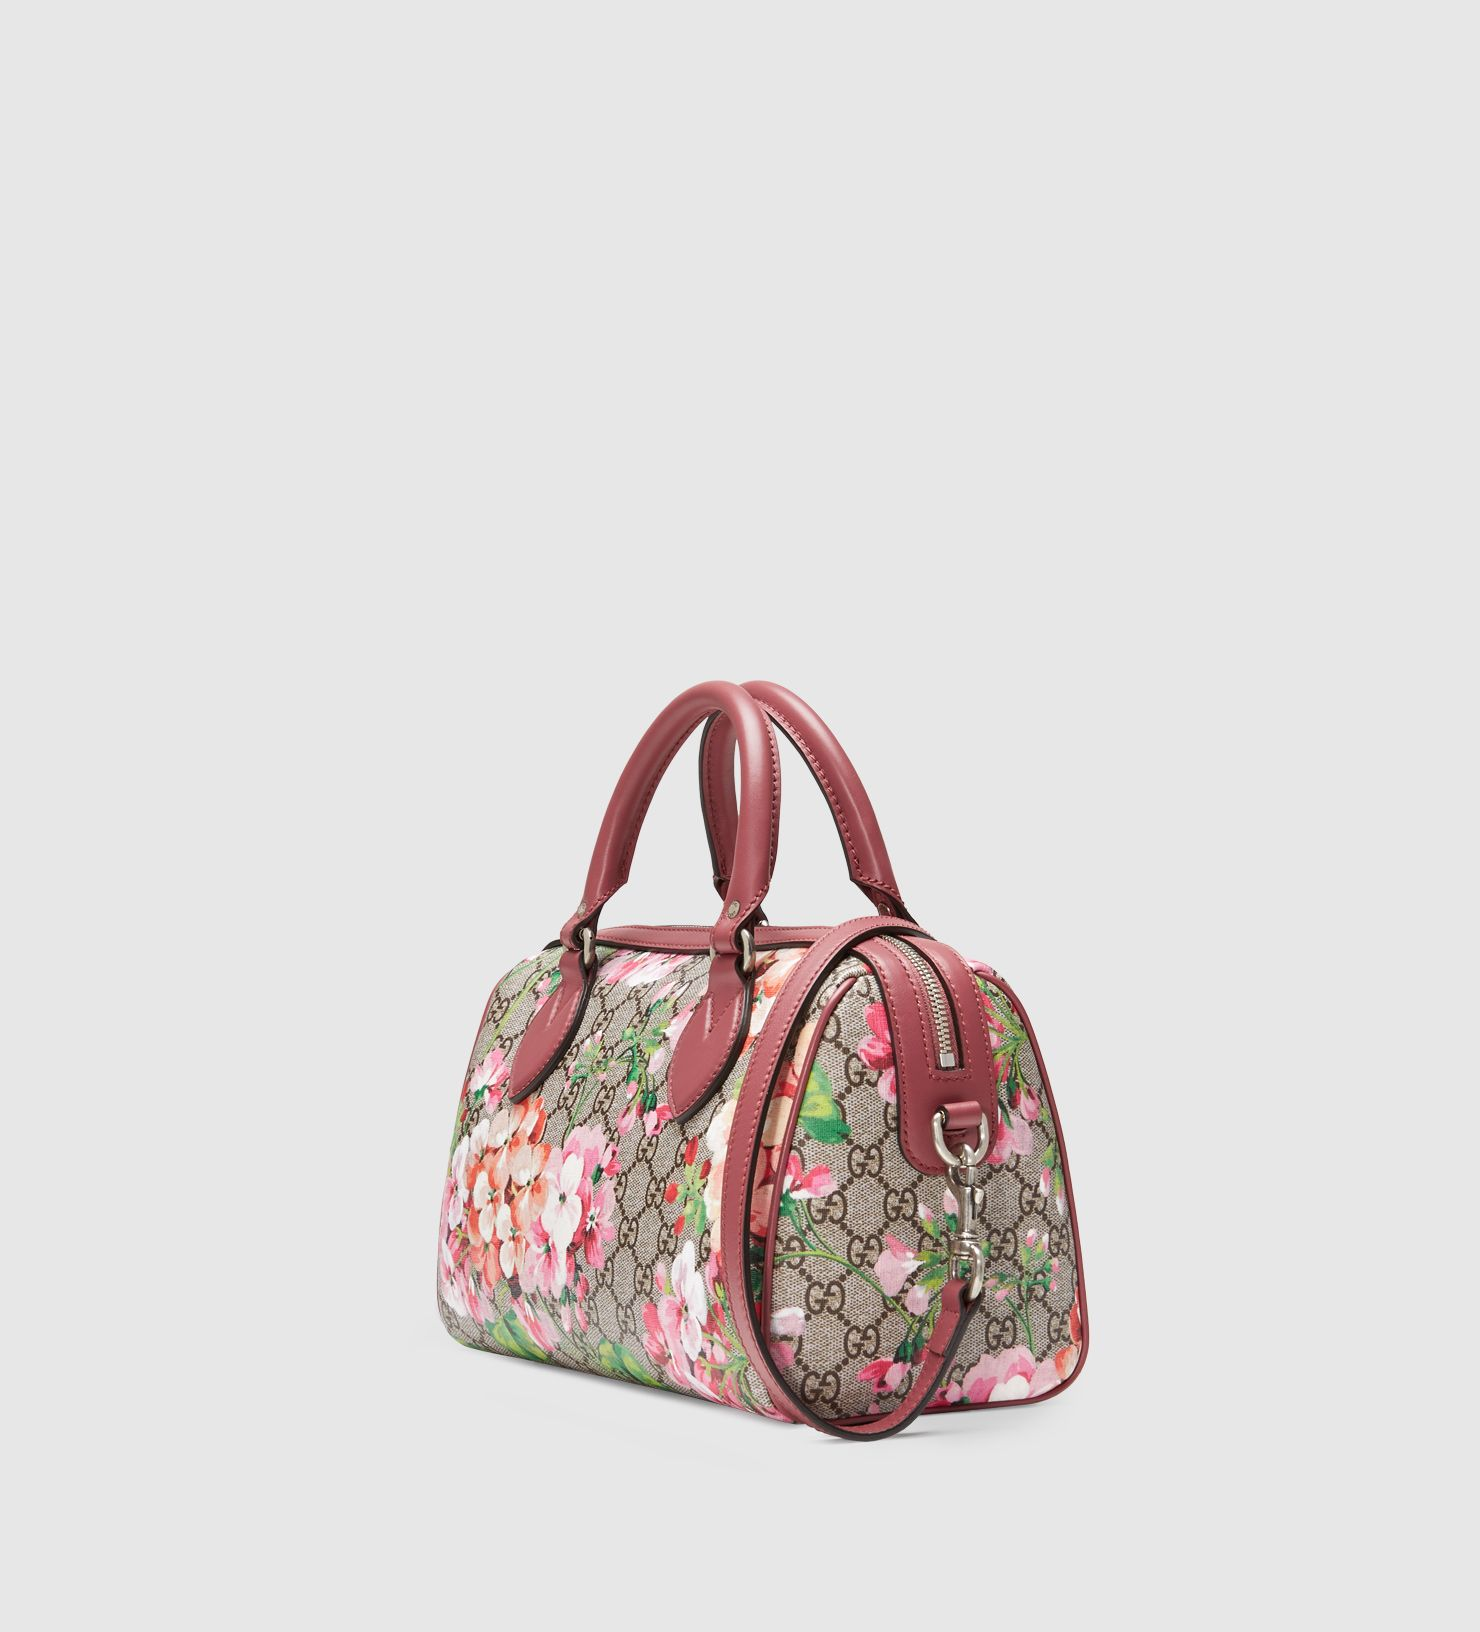 dd0cfaccd27a Blooms GG Supreme Top Handle Bag | bags | Bags, Gucci handbags ...